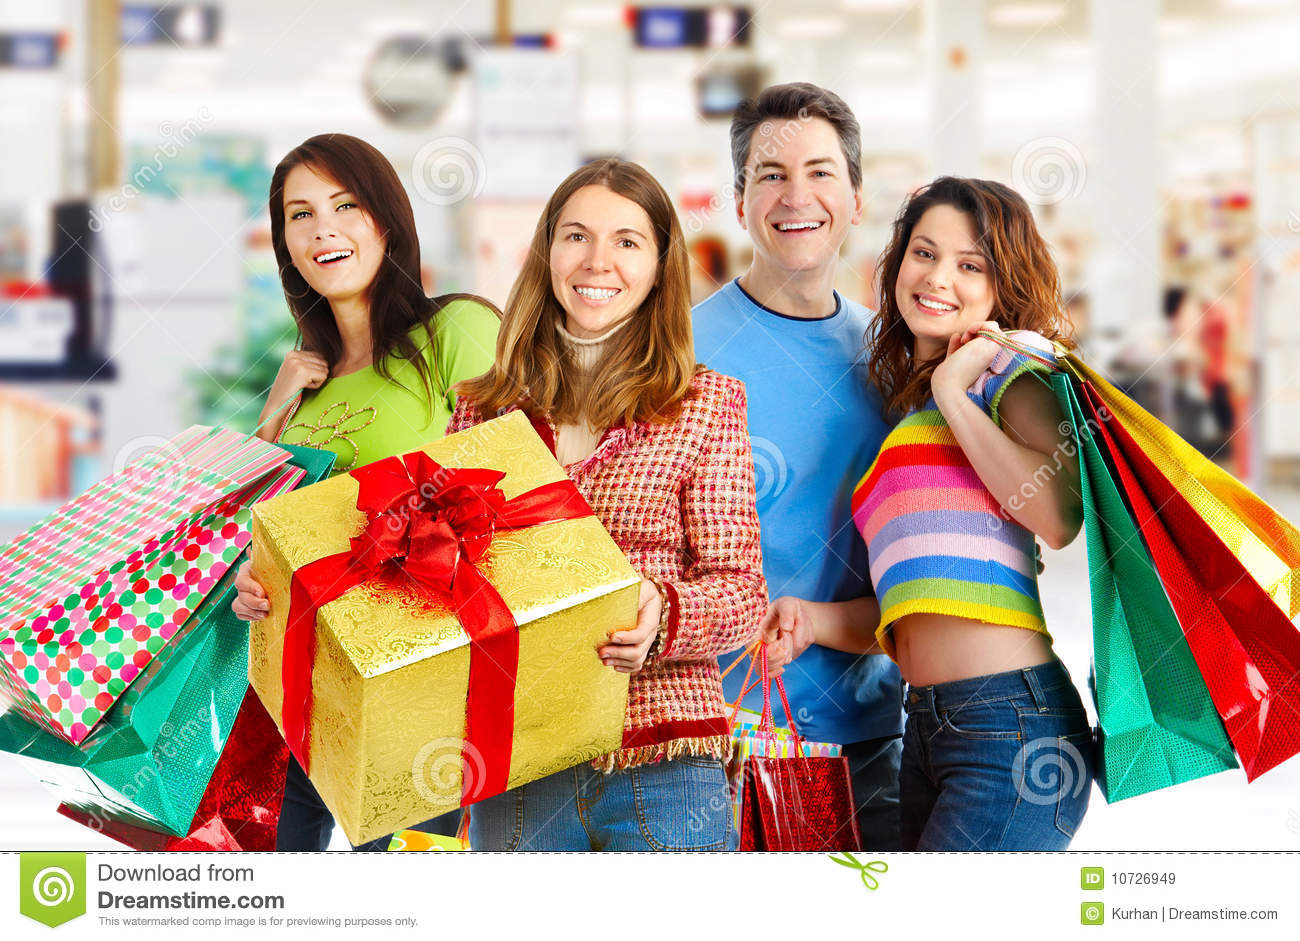 happy-shopping-people-10726949.jpg